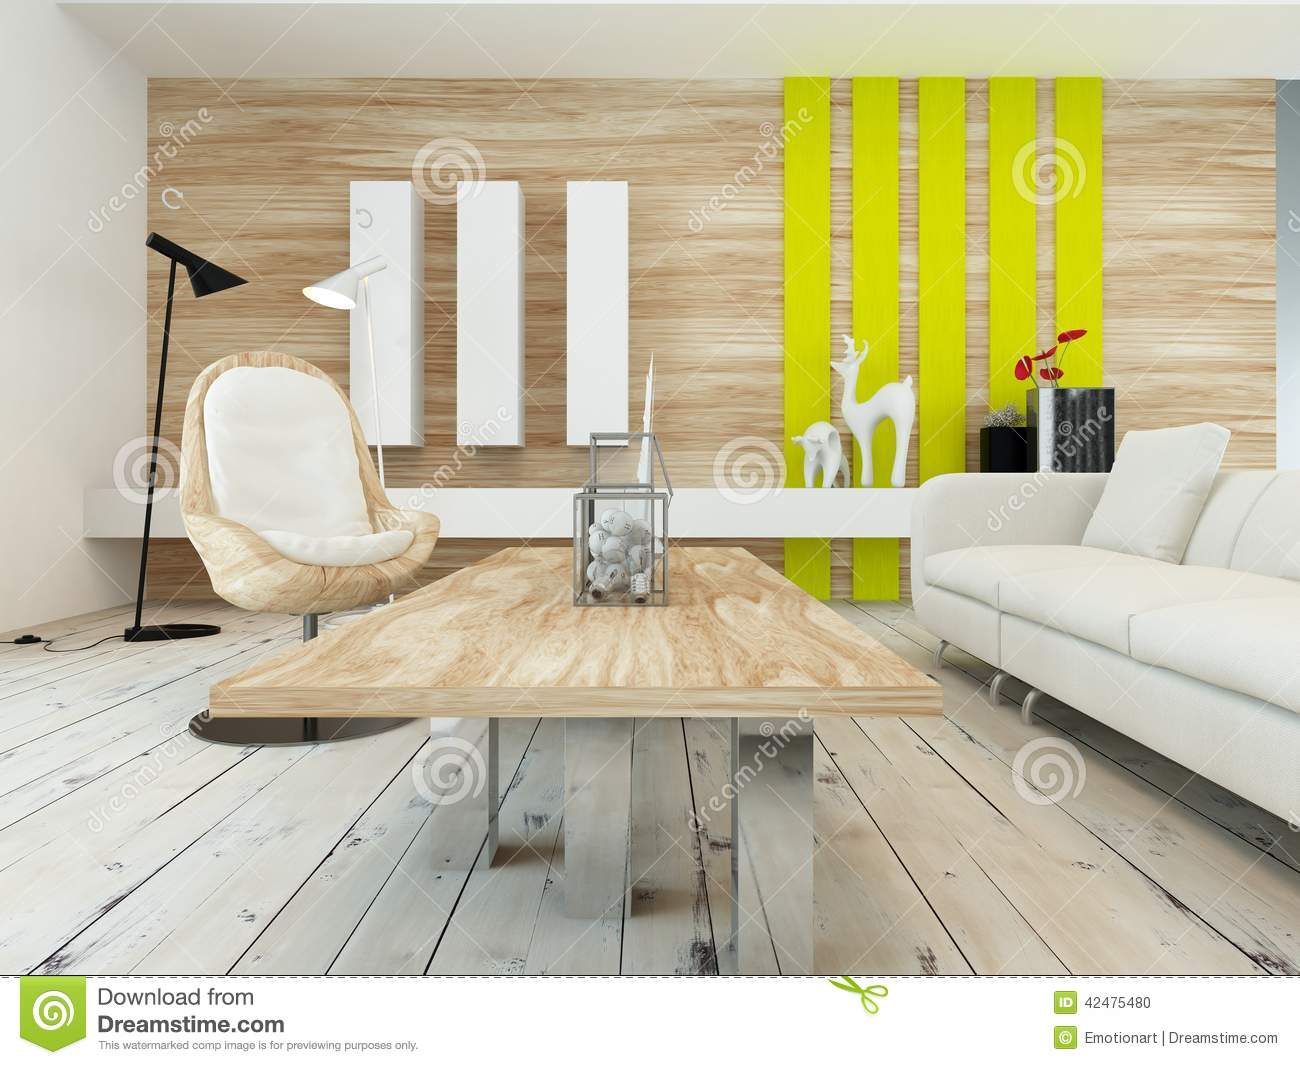 rustic decor in a modern living room stock illustration